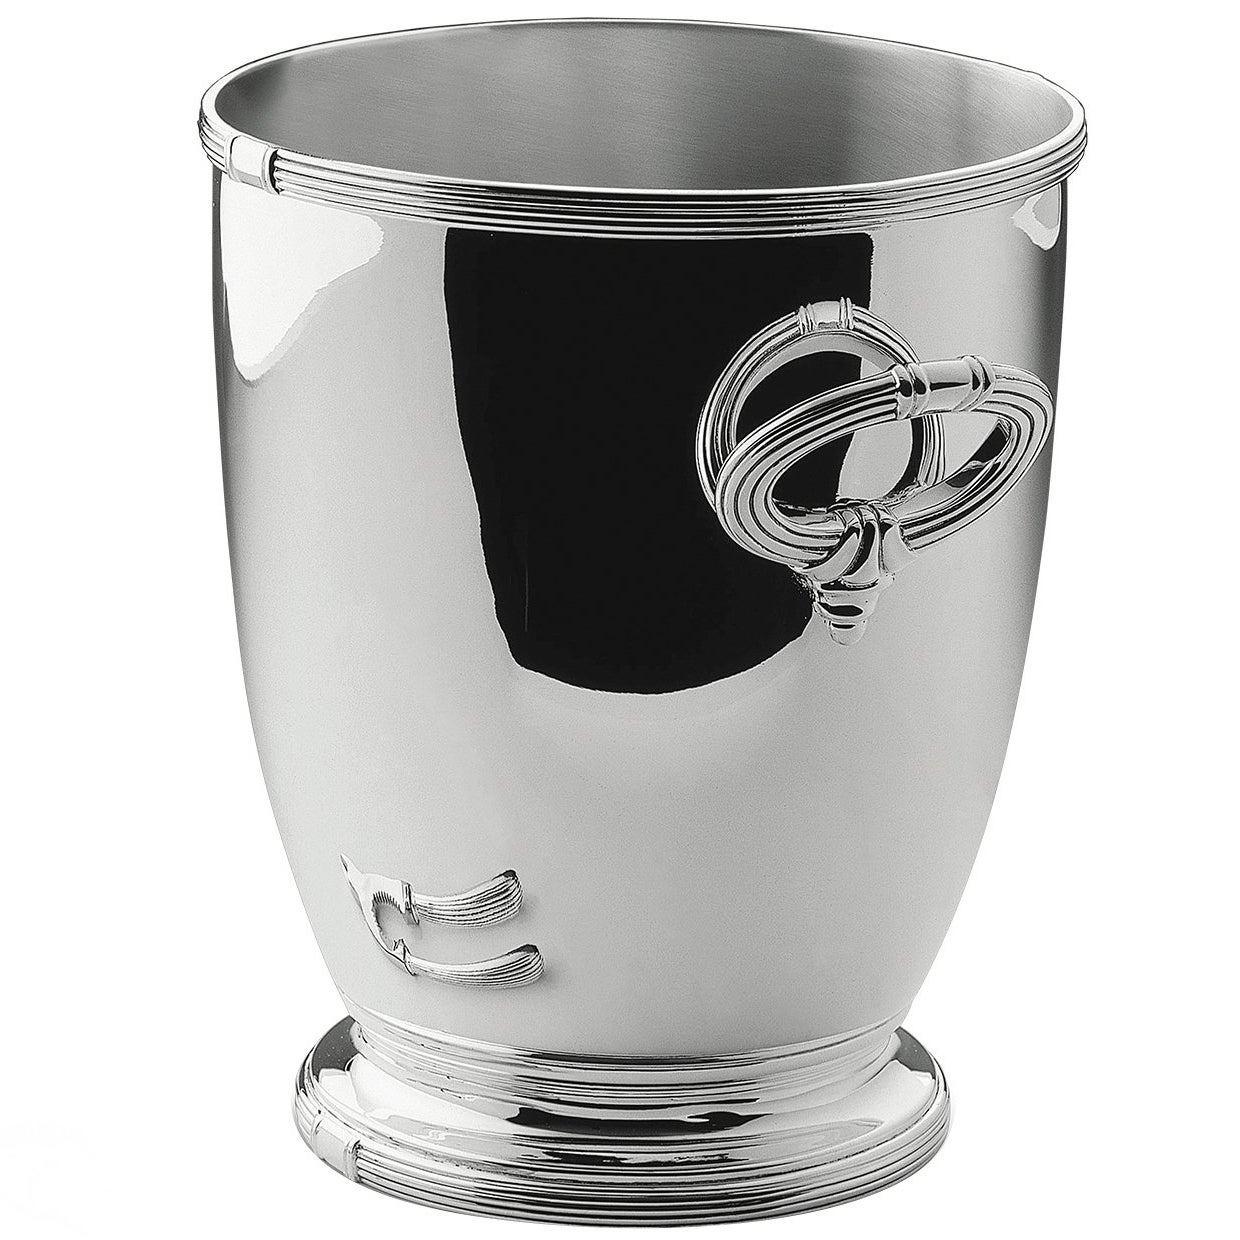 Acropole Champagne Bucket